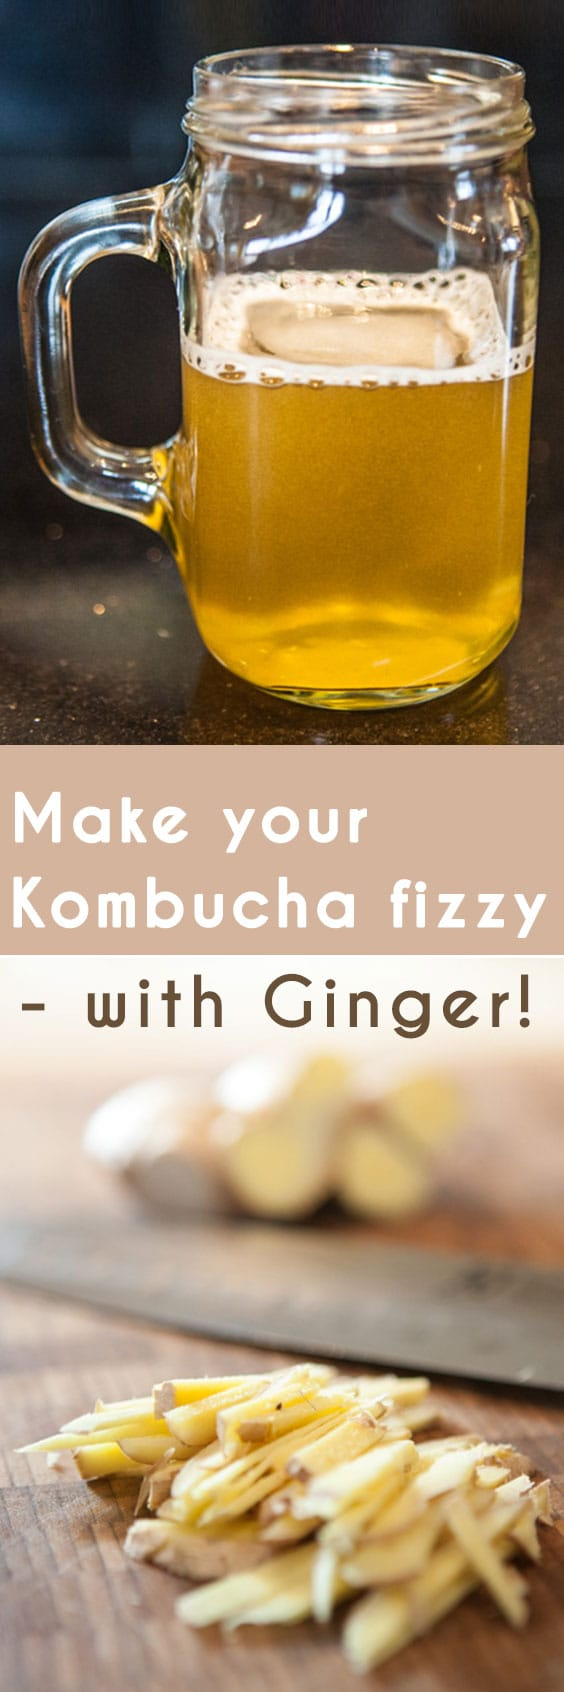 A surefire recipe for adding fizz to your kombucha, using the natural carbonating effects of ginger.